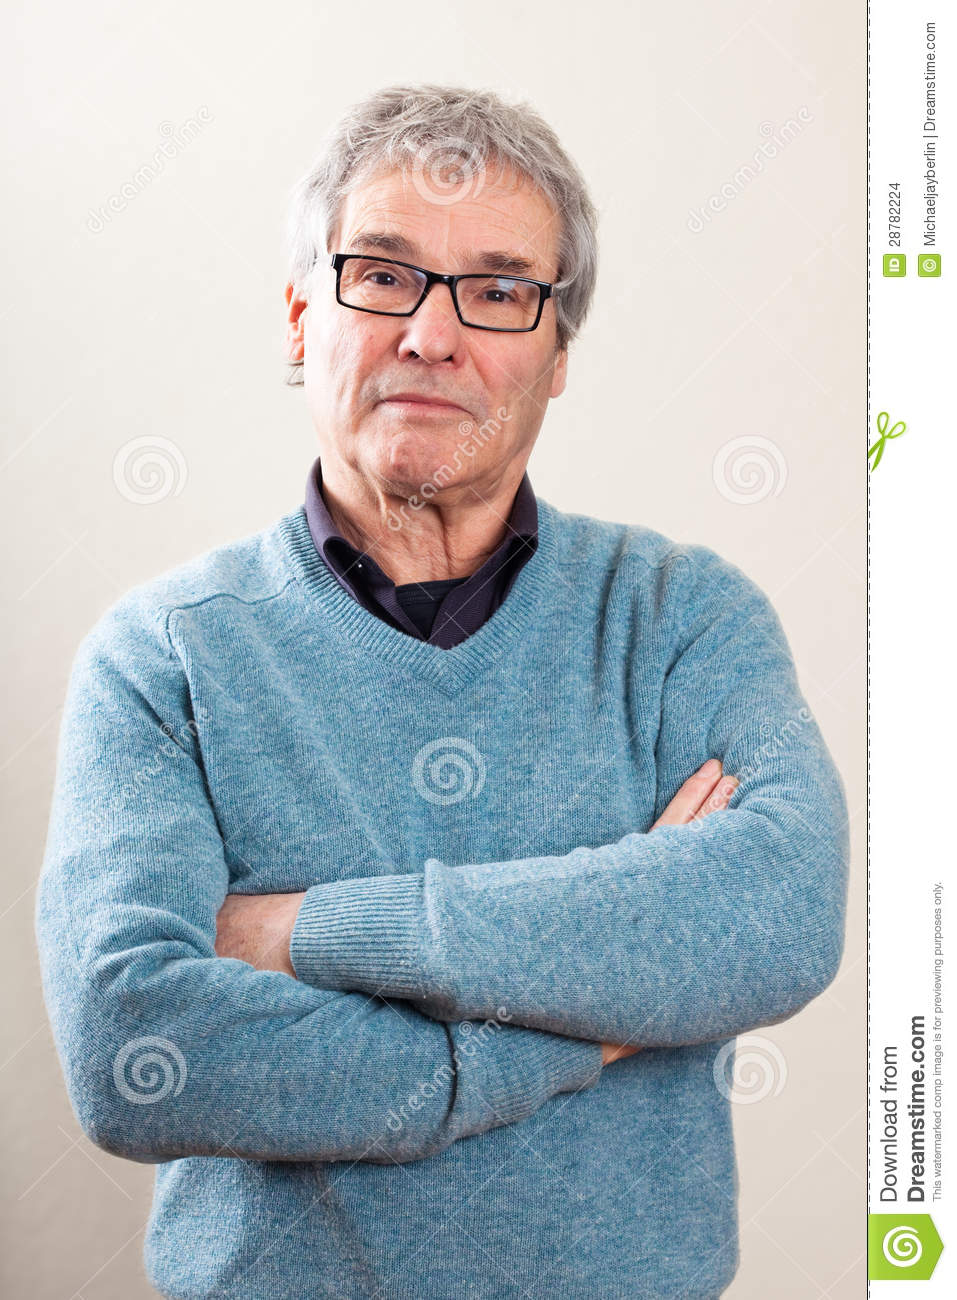 Real People Portrait Waist Up Senior Caucasian Man Stock Images  Image 28782224